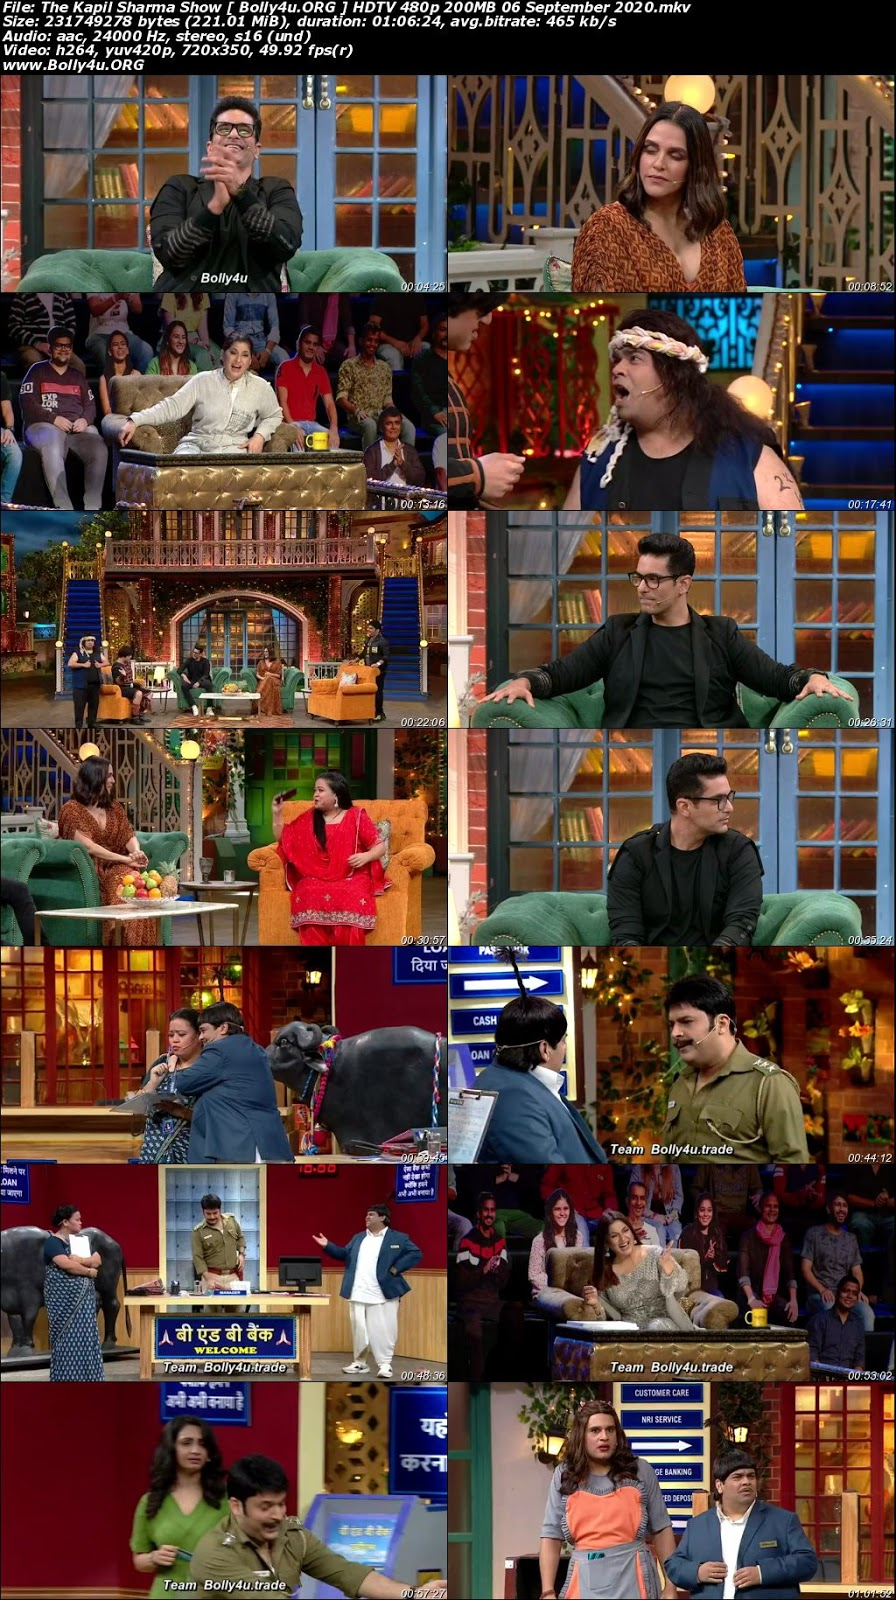 The Kapil Sharma Show HDTV 480p 200MB 06 September 2020 Download